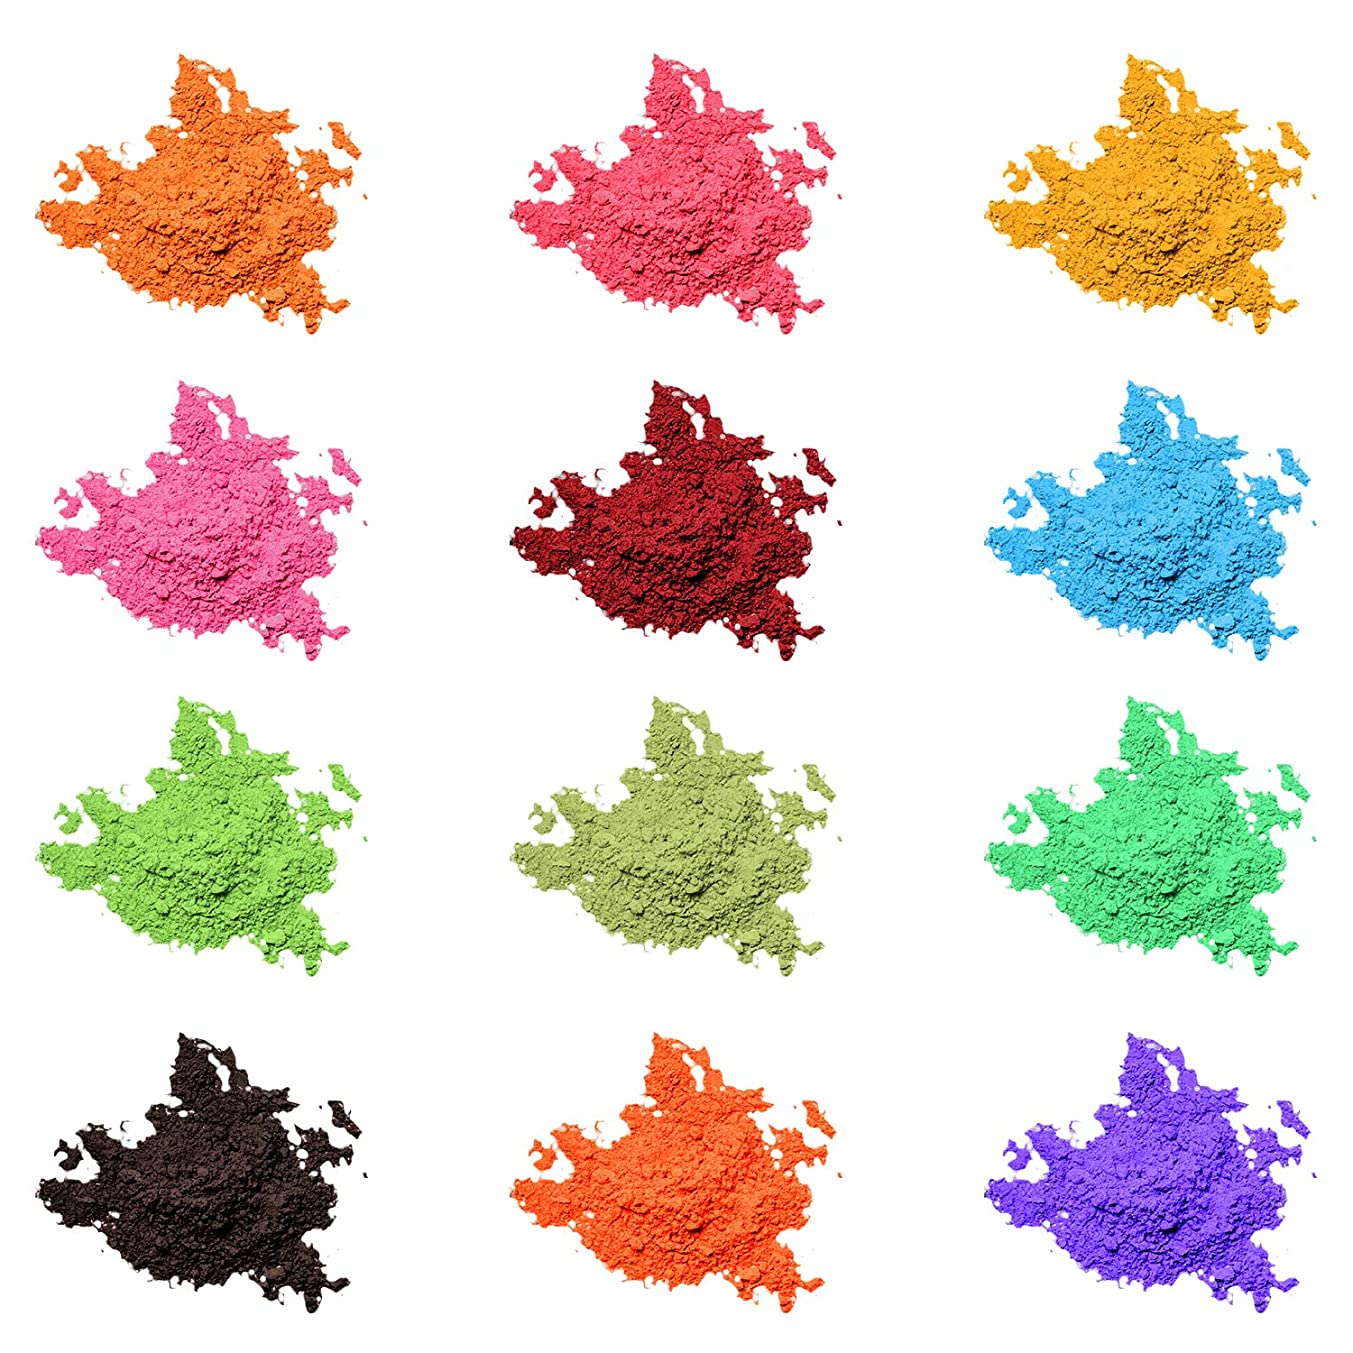 Mica Powder Pigment Pure 12 Color,Cosmetic Grade Natural Epoxy Resin Pigment Powder for DIY Slime Coloring and Soap Making Supplies,Bath Bomb Colorant,Paint,Makeup Dye,Nail Art,Eye Shadow, Craft